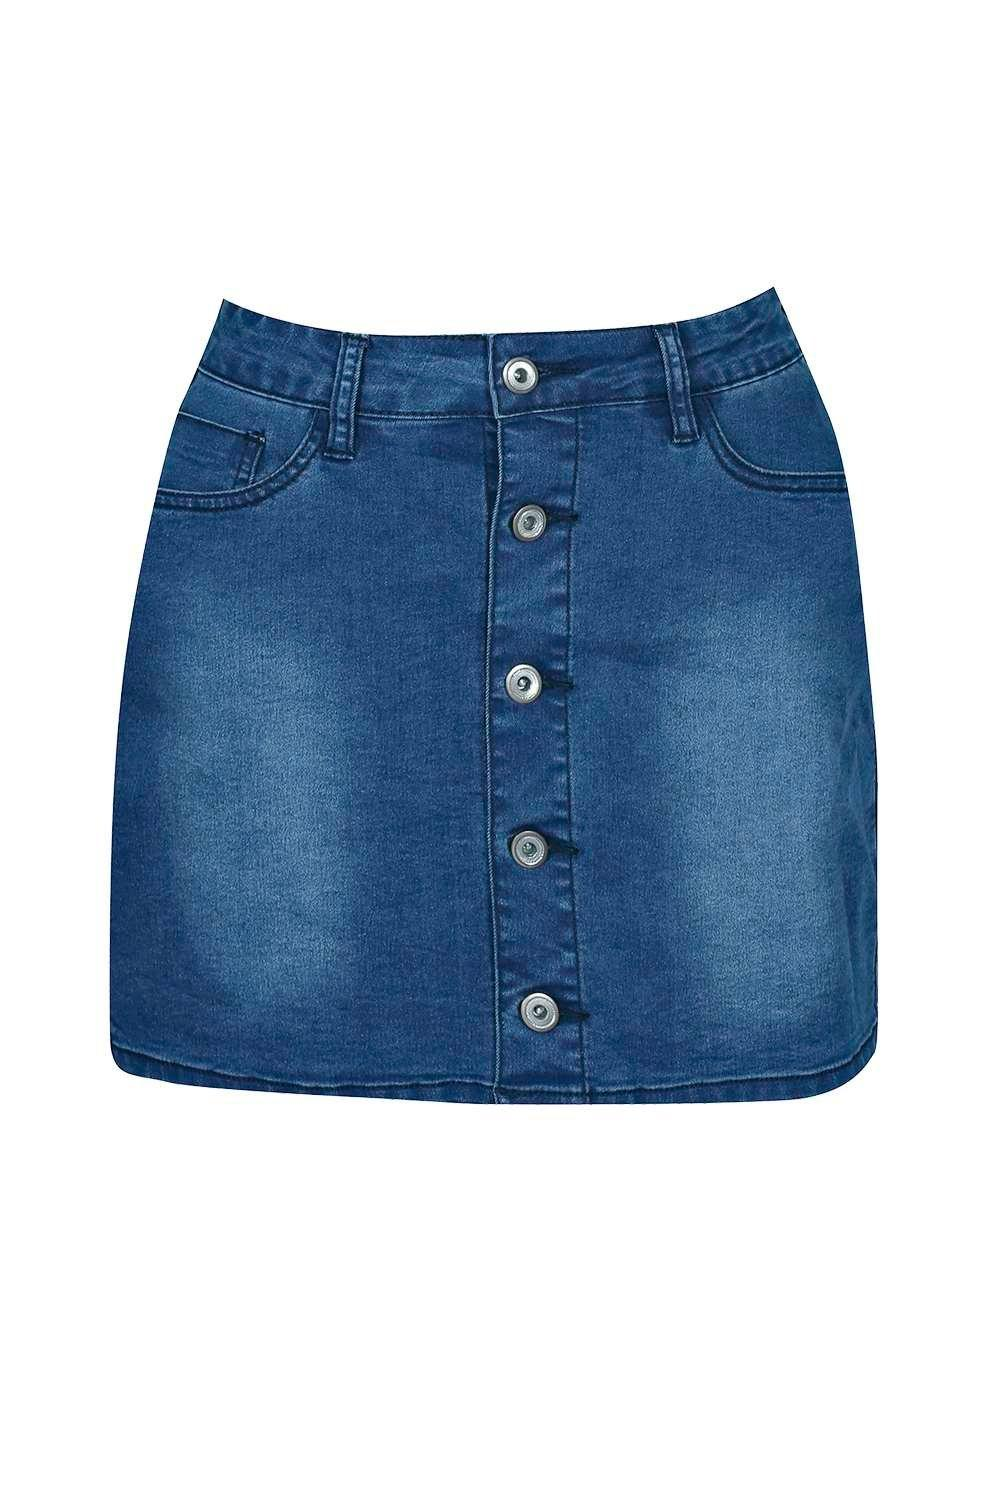 Elsie Denim Button Through Mini Mid Blue Skirt